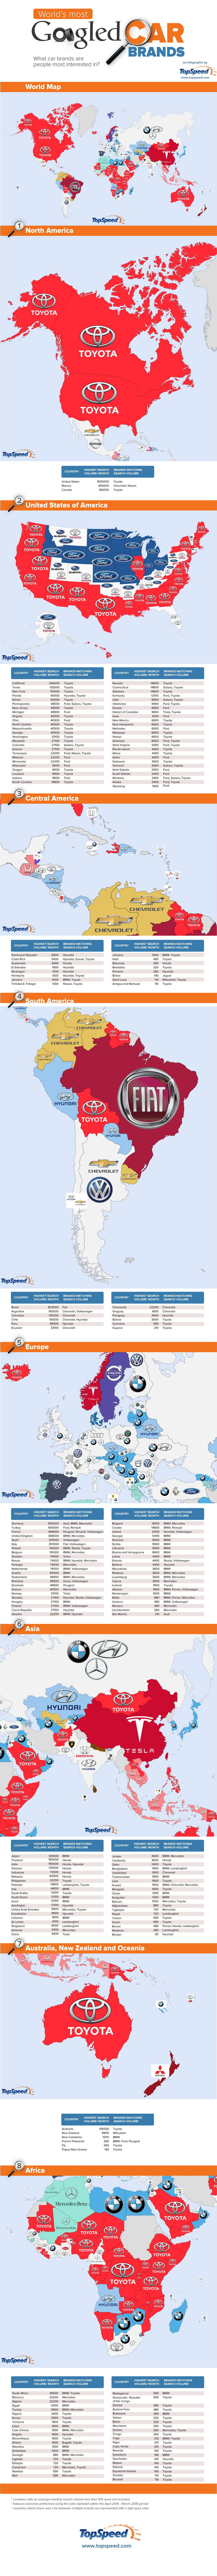 The World's Most Searched Car Brands: Infographic